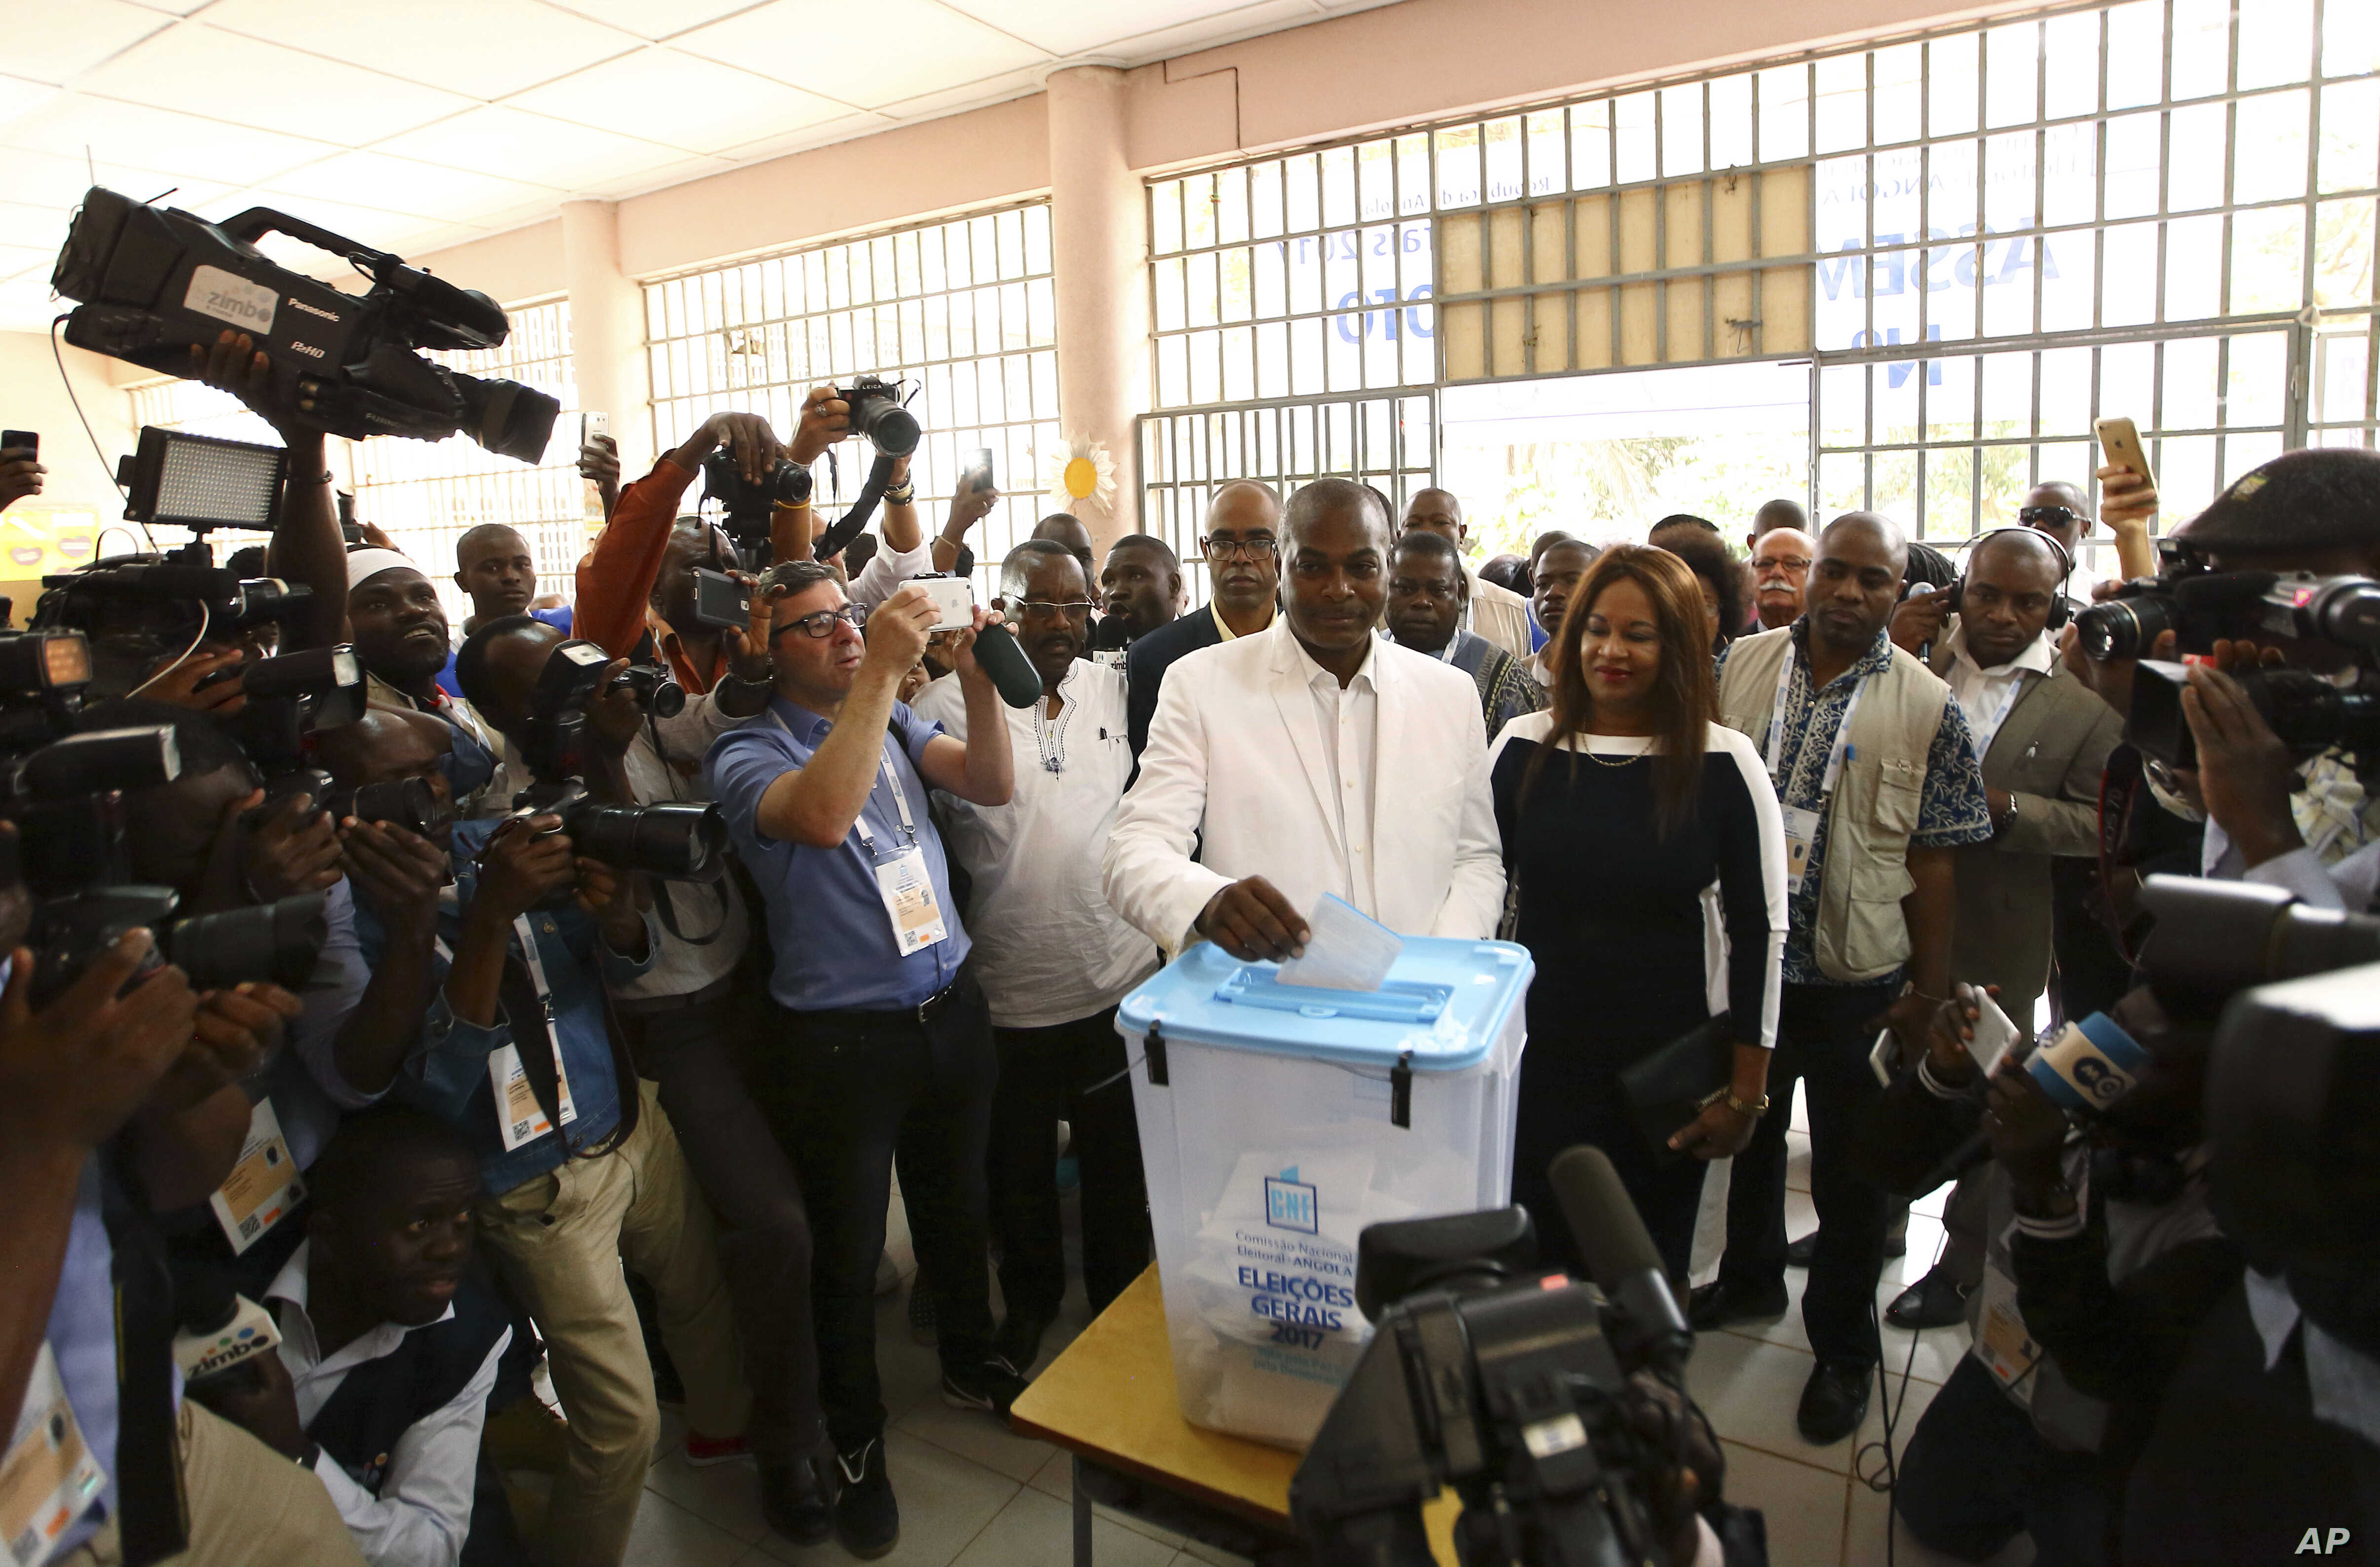 Abel Chivukuvuku, opposition CASA-CE candidate, casts his vote in elections in Luanda, Angola, Aug. 23, 2017.